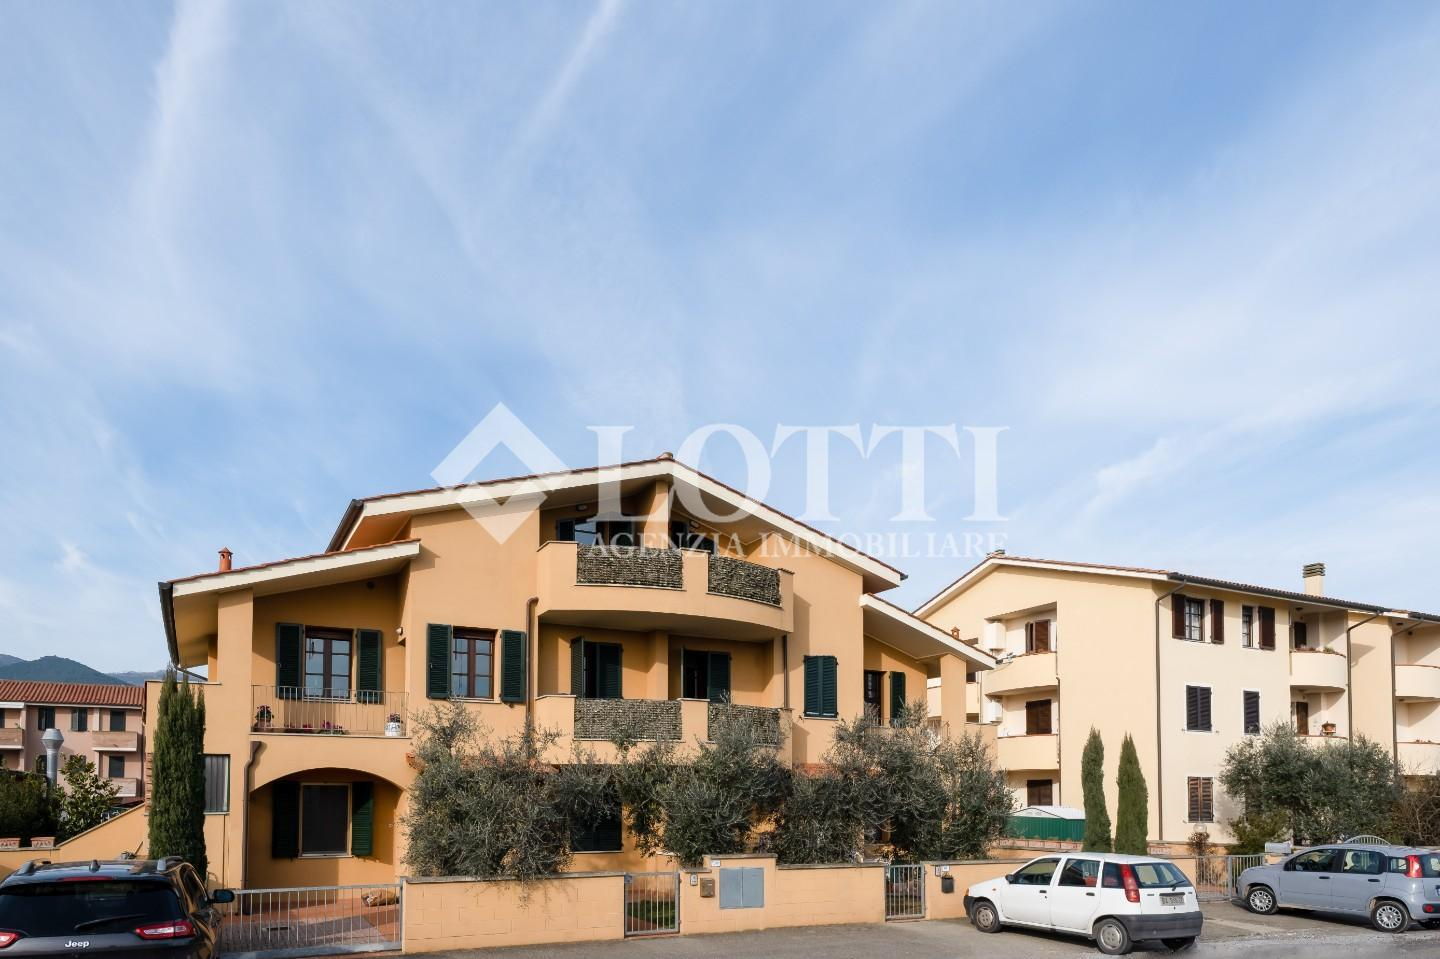 Apartment for sale, ref. 671-B